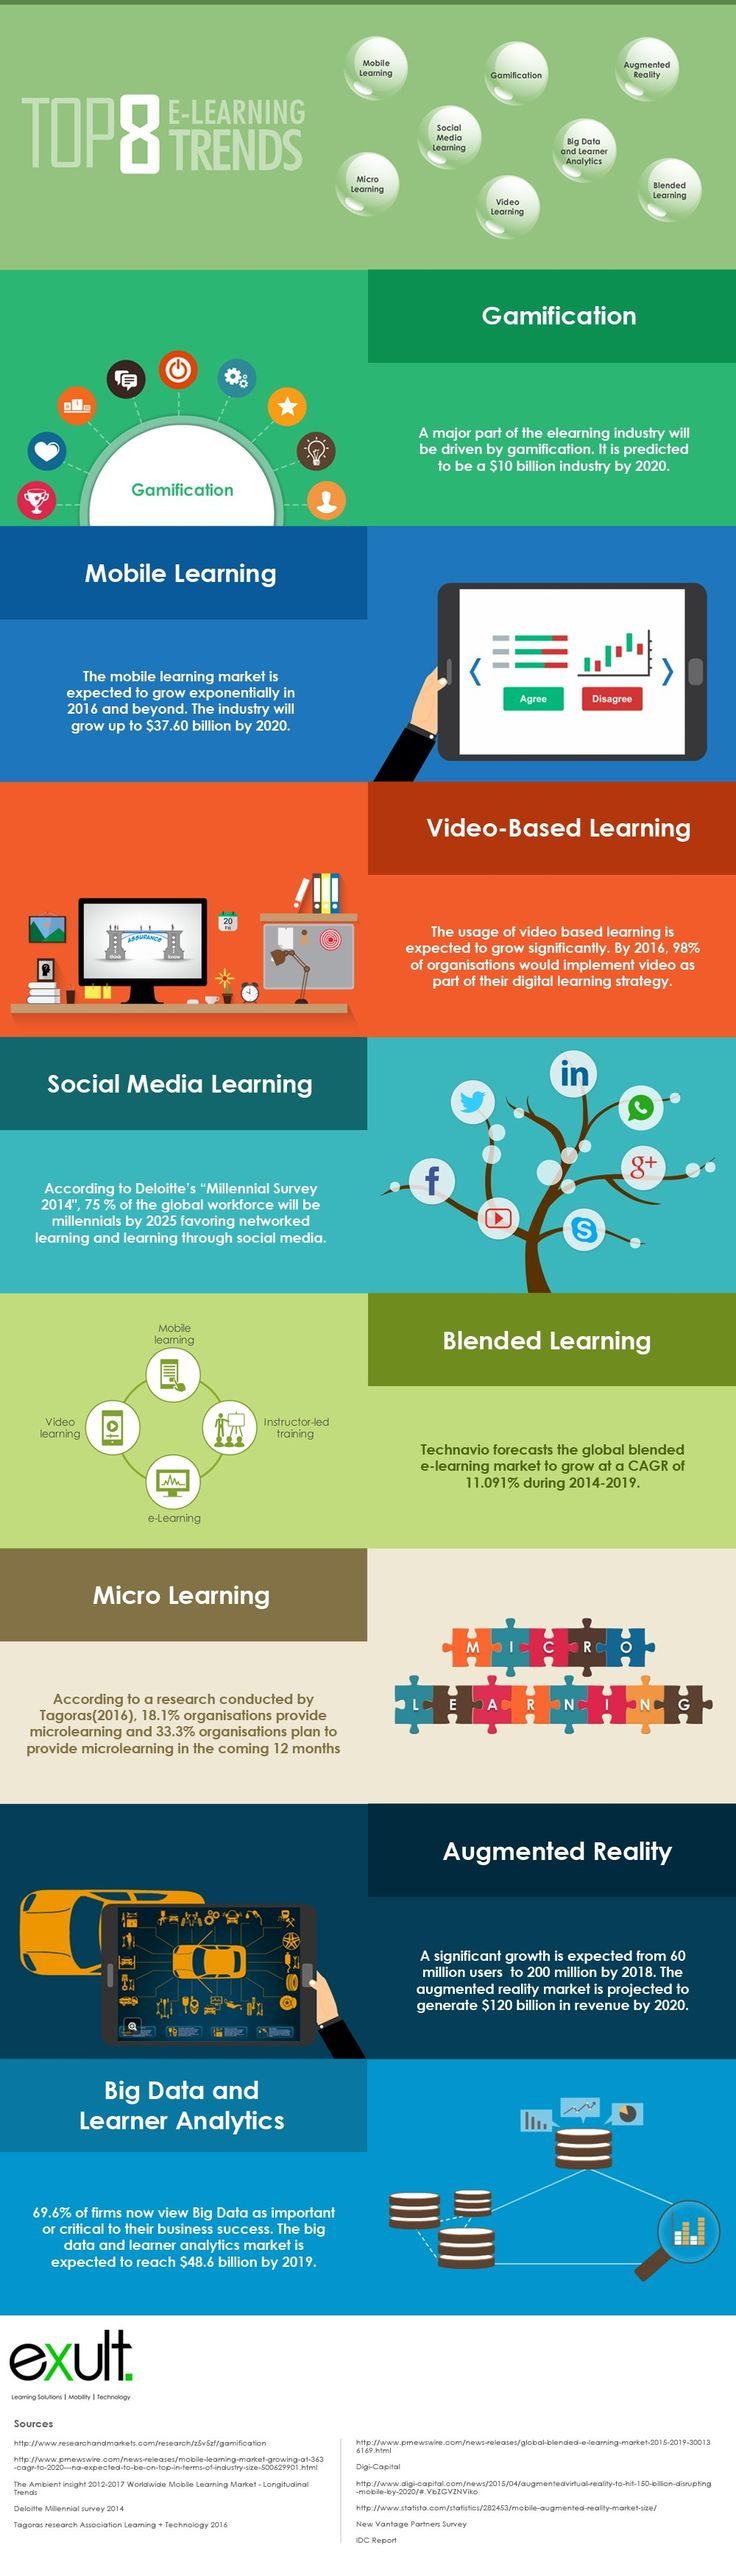 Top 8 eLearning Trends Infographic Keeping a close eye on the trends is important for learning professionals since they are responsible for managing traini